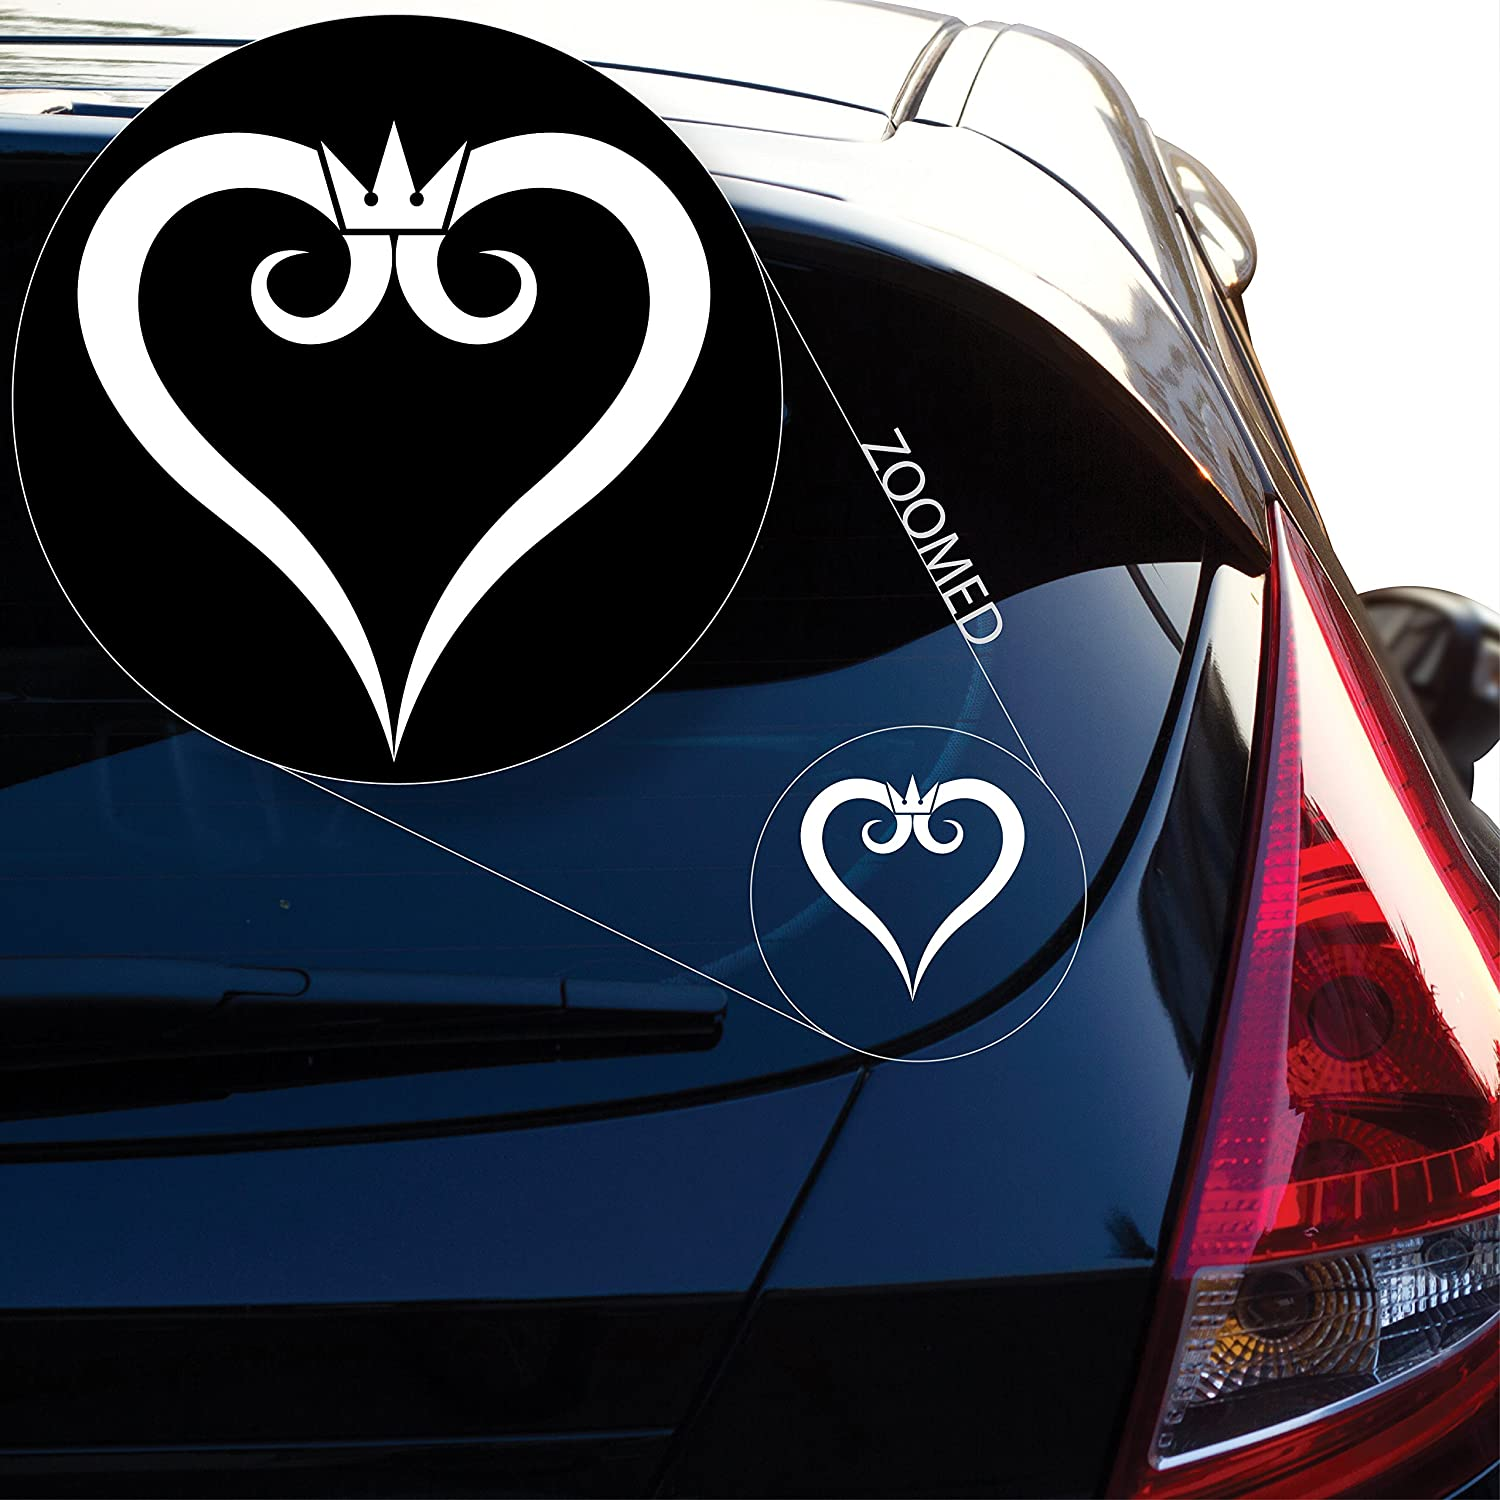 "Geekery Kingdom Hearts Inspired Heart Crown Decal Sticker for Car Window, Laptop and More. # 491 (4"" x 3.9"", White)"